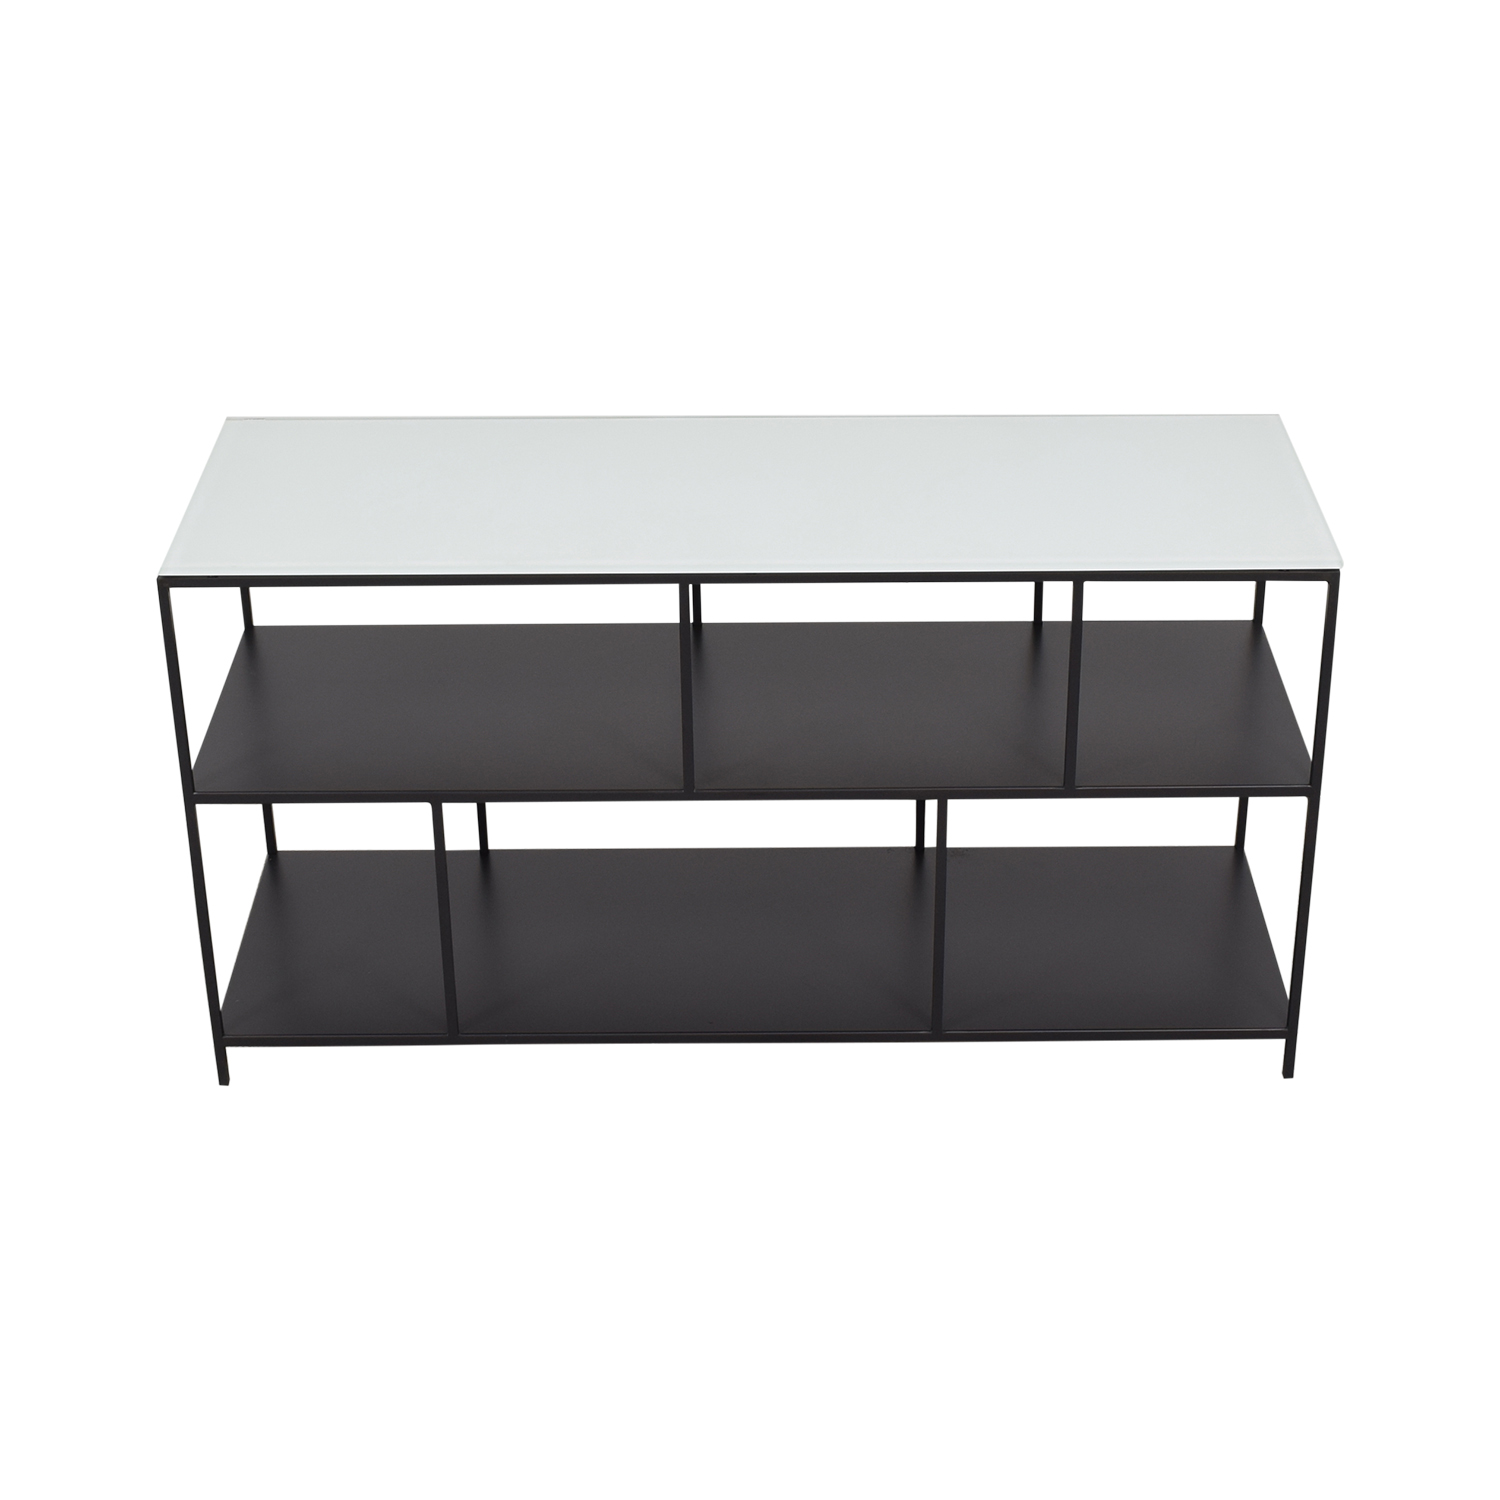 Terrific 53 Off Room Board Room Board Bowen Console Table Storage Pdpeps Interior Chair Design Pdpepsorg